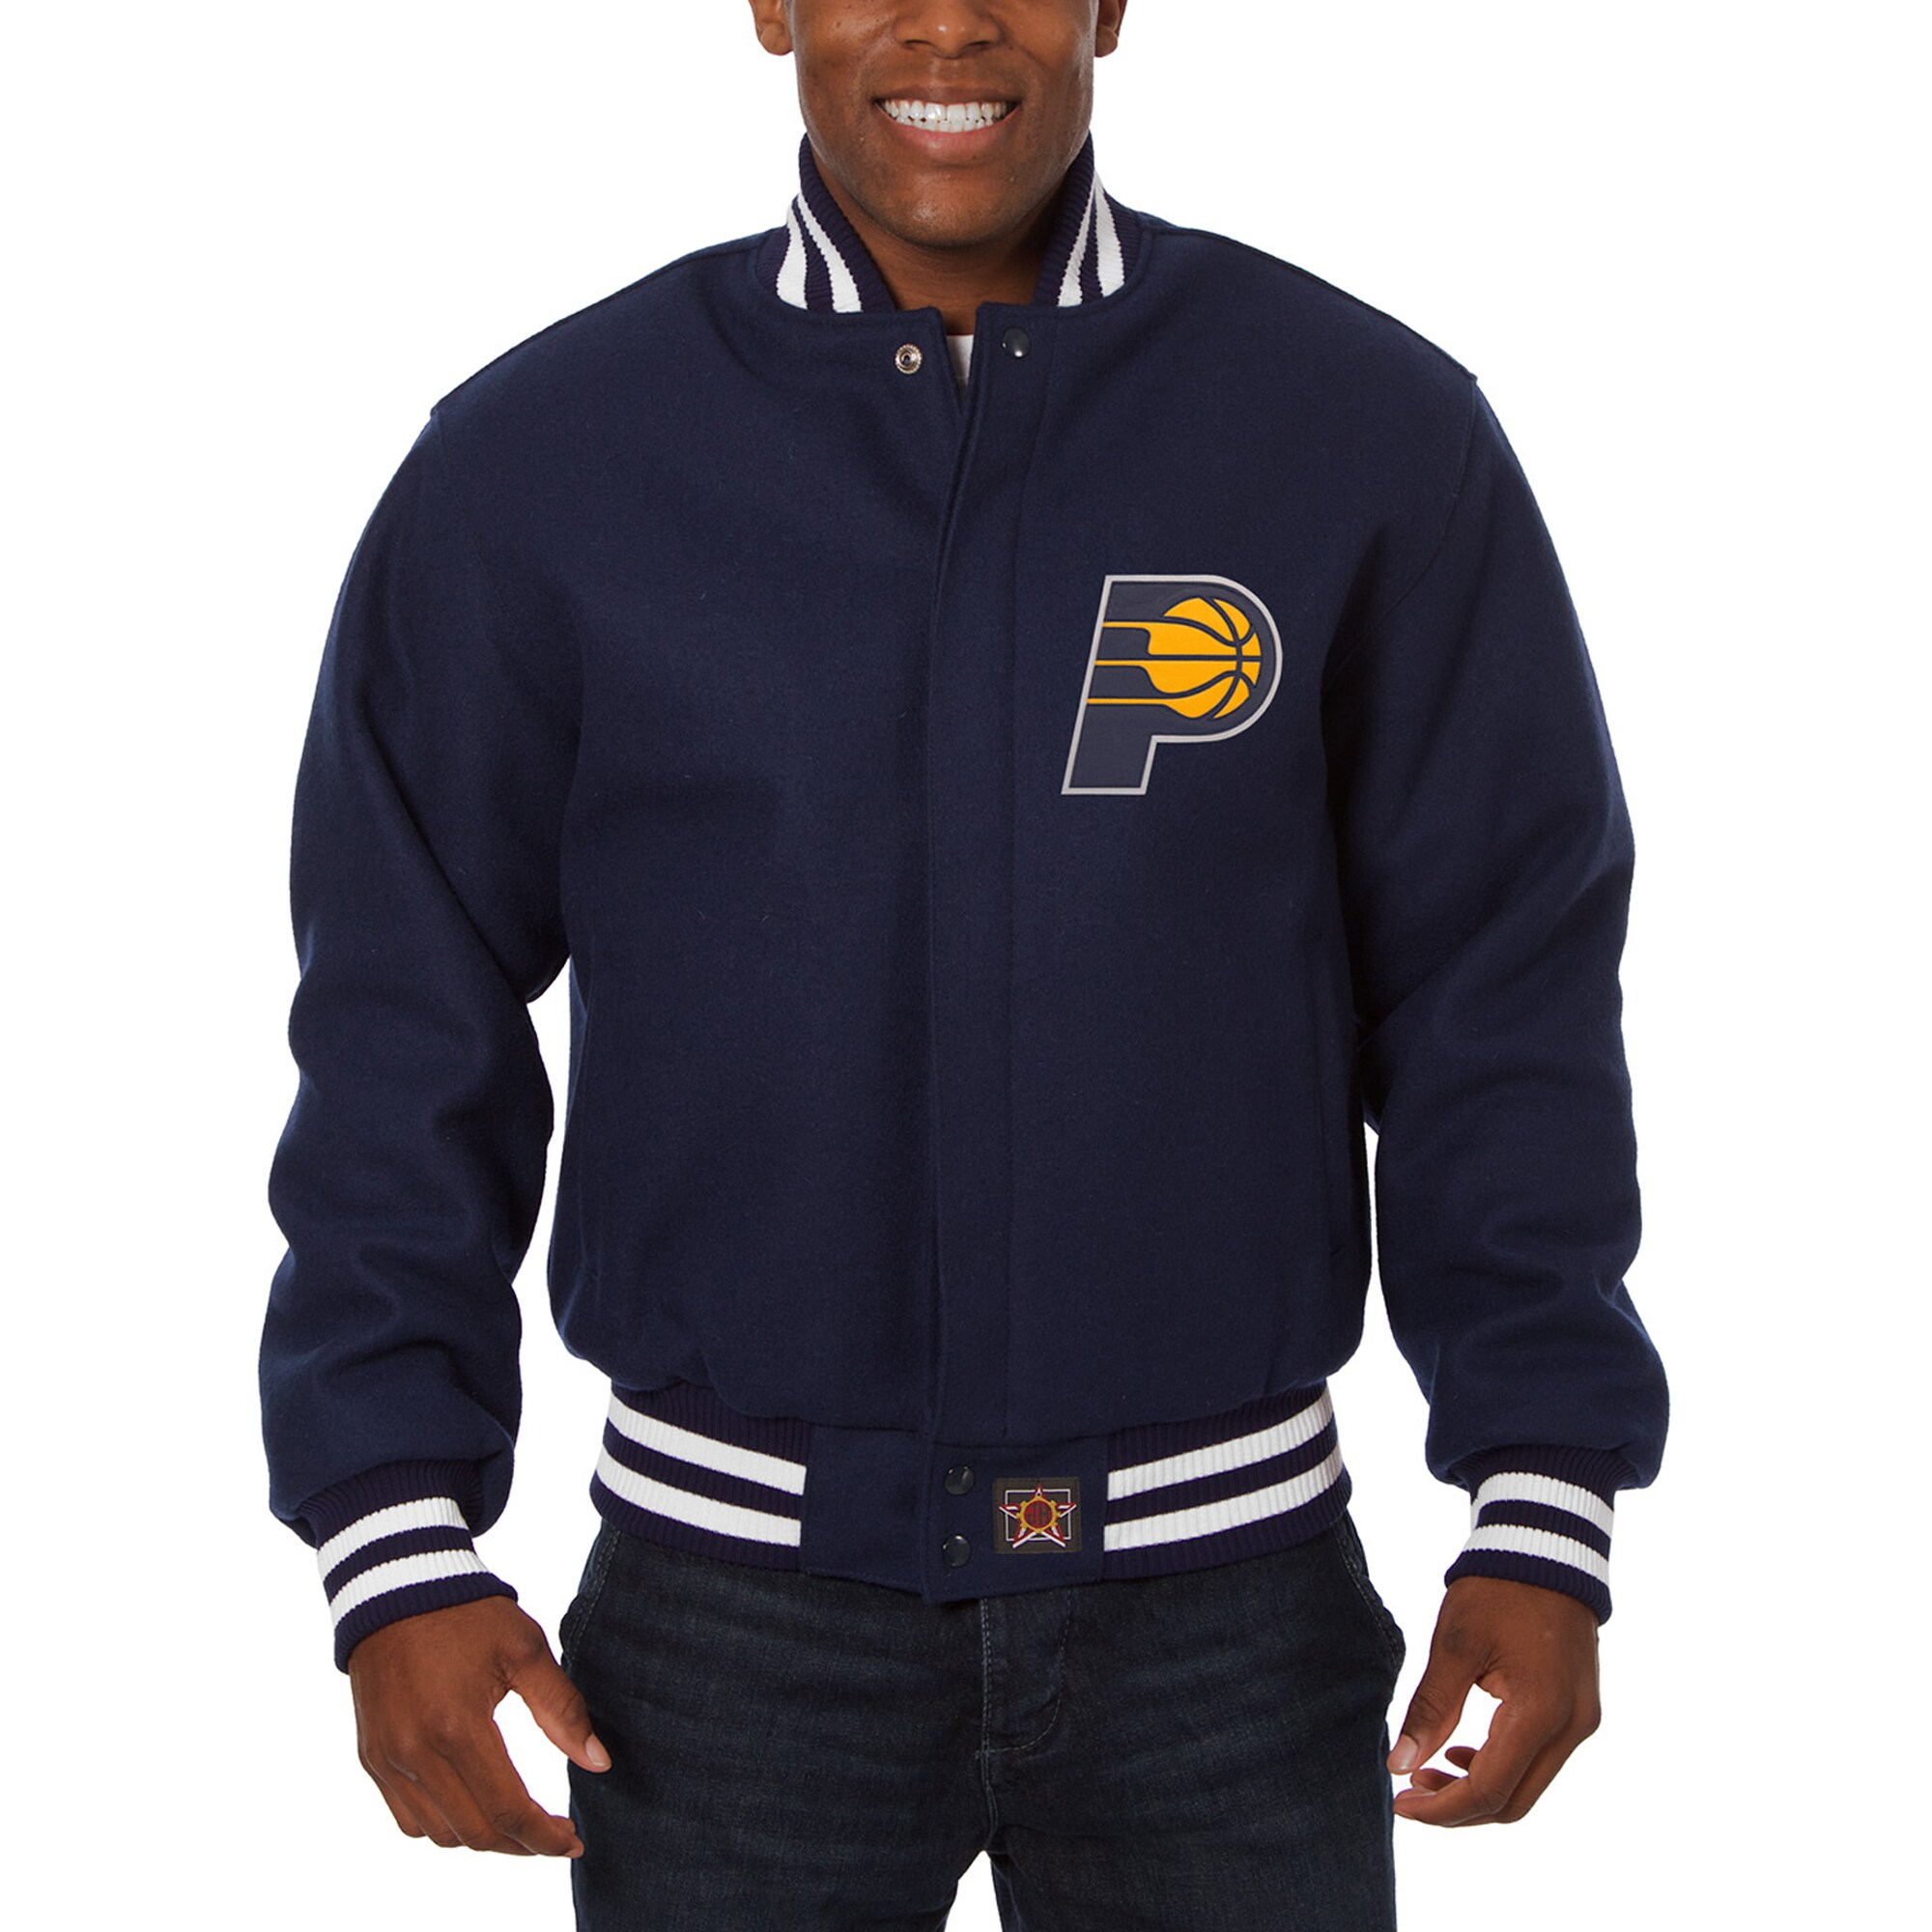 Indiana Pacers JH Design Big & Tall All Wool Jacket with Leather Logo - Navy